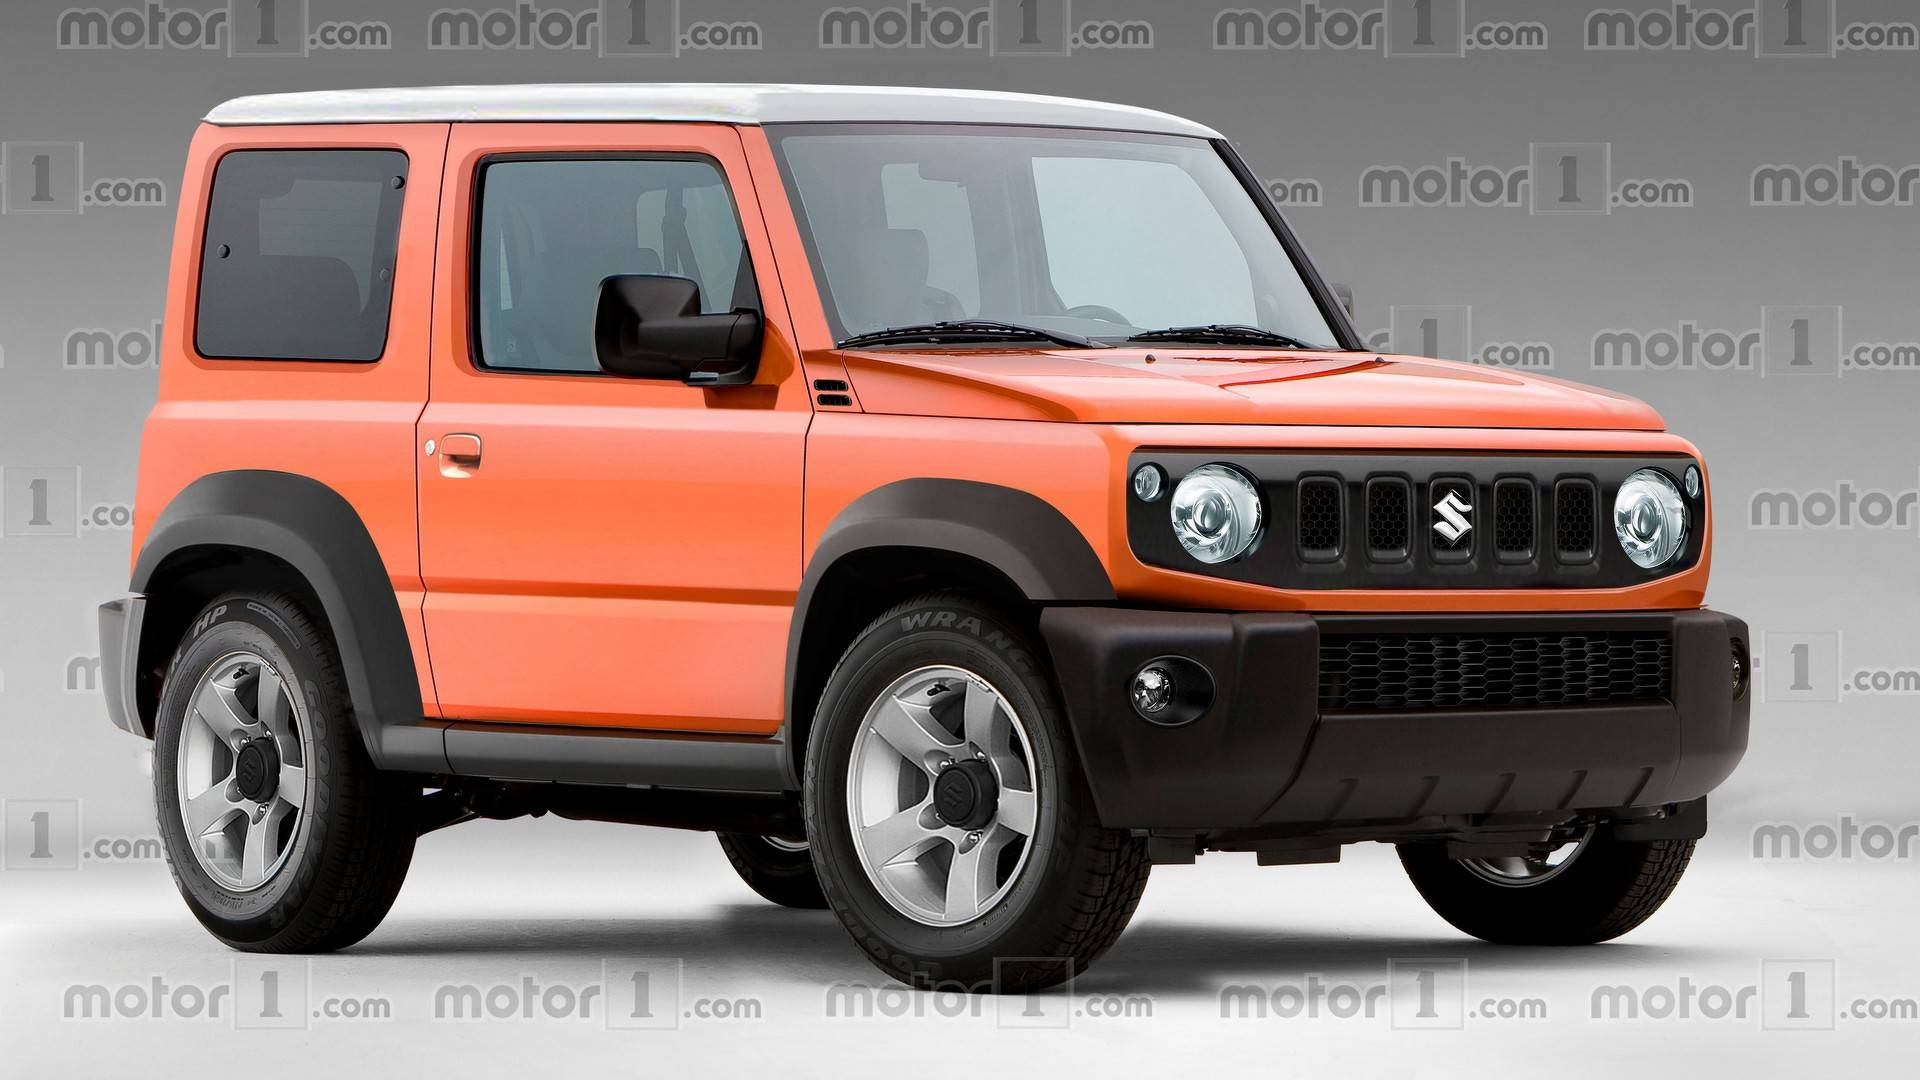 Suzuki Jimny Production Ends Next Generation Debuting